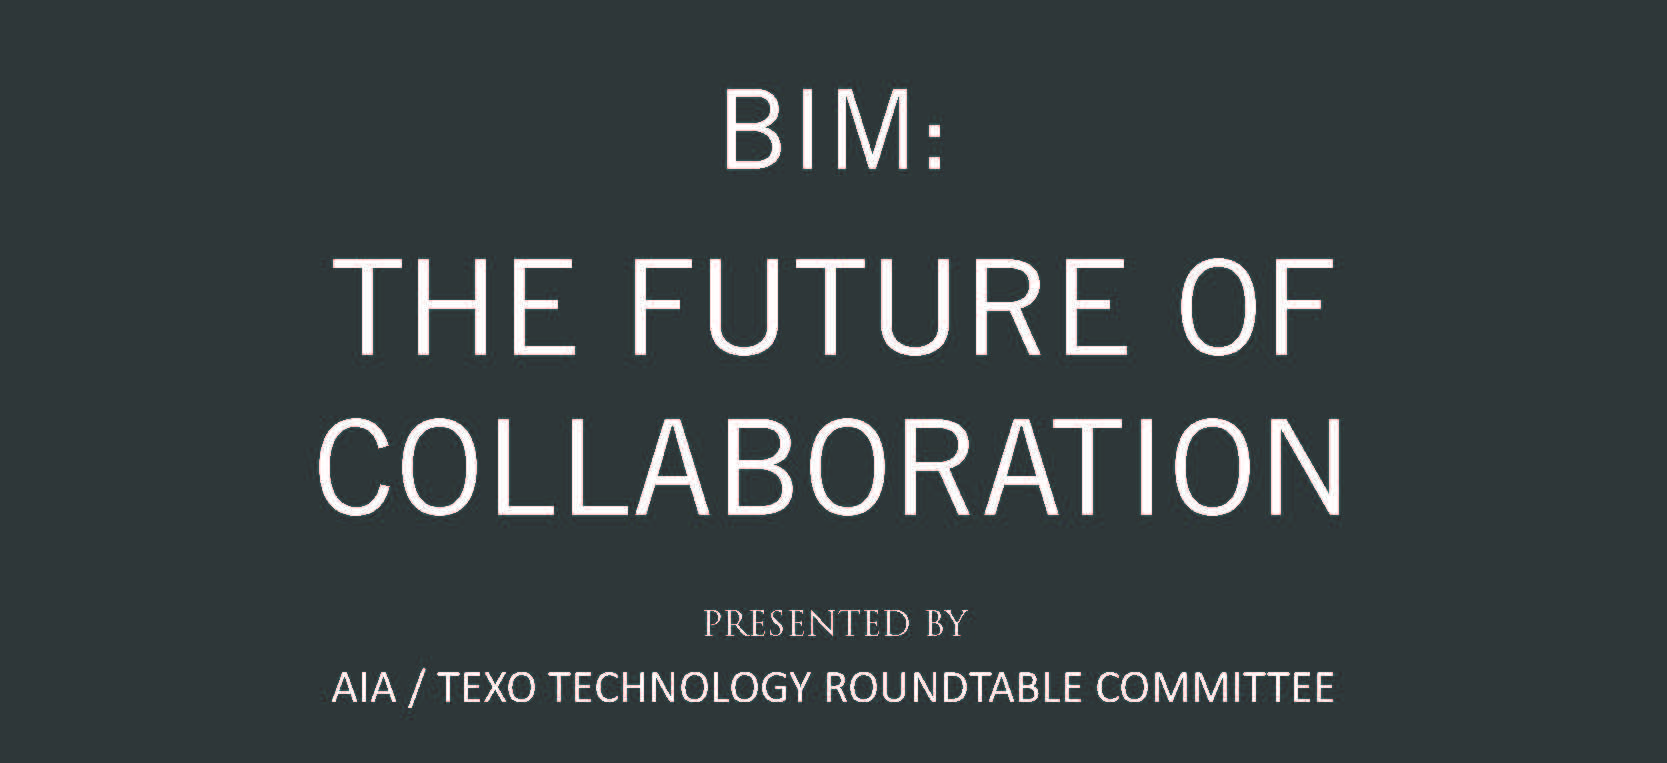 AIA|TEXO Technology Roundtable